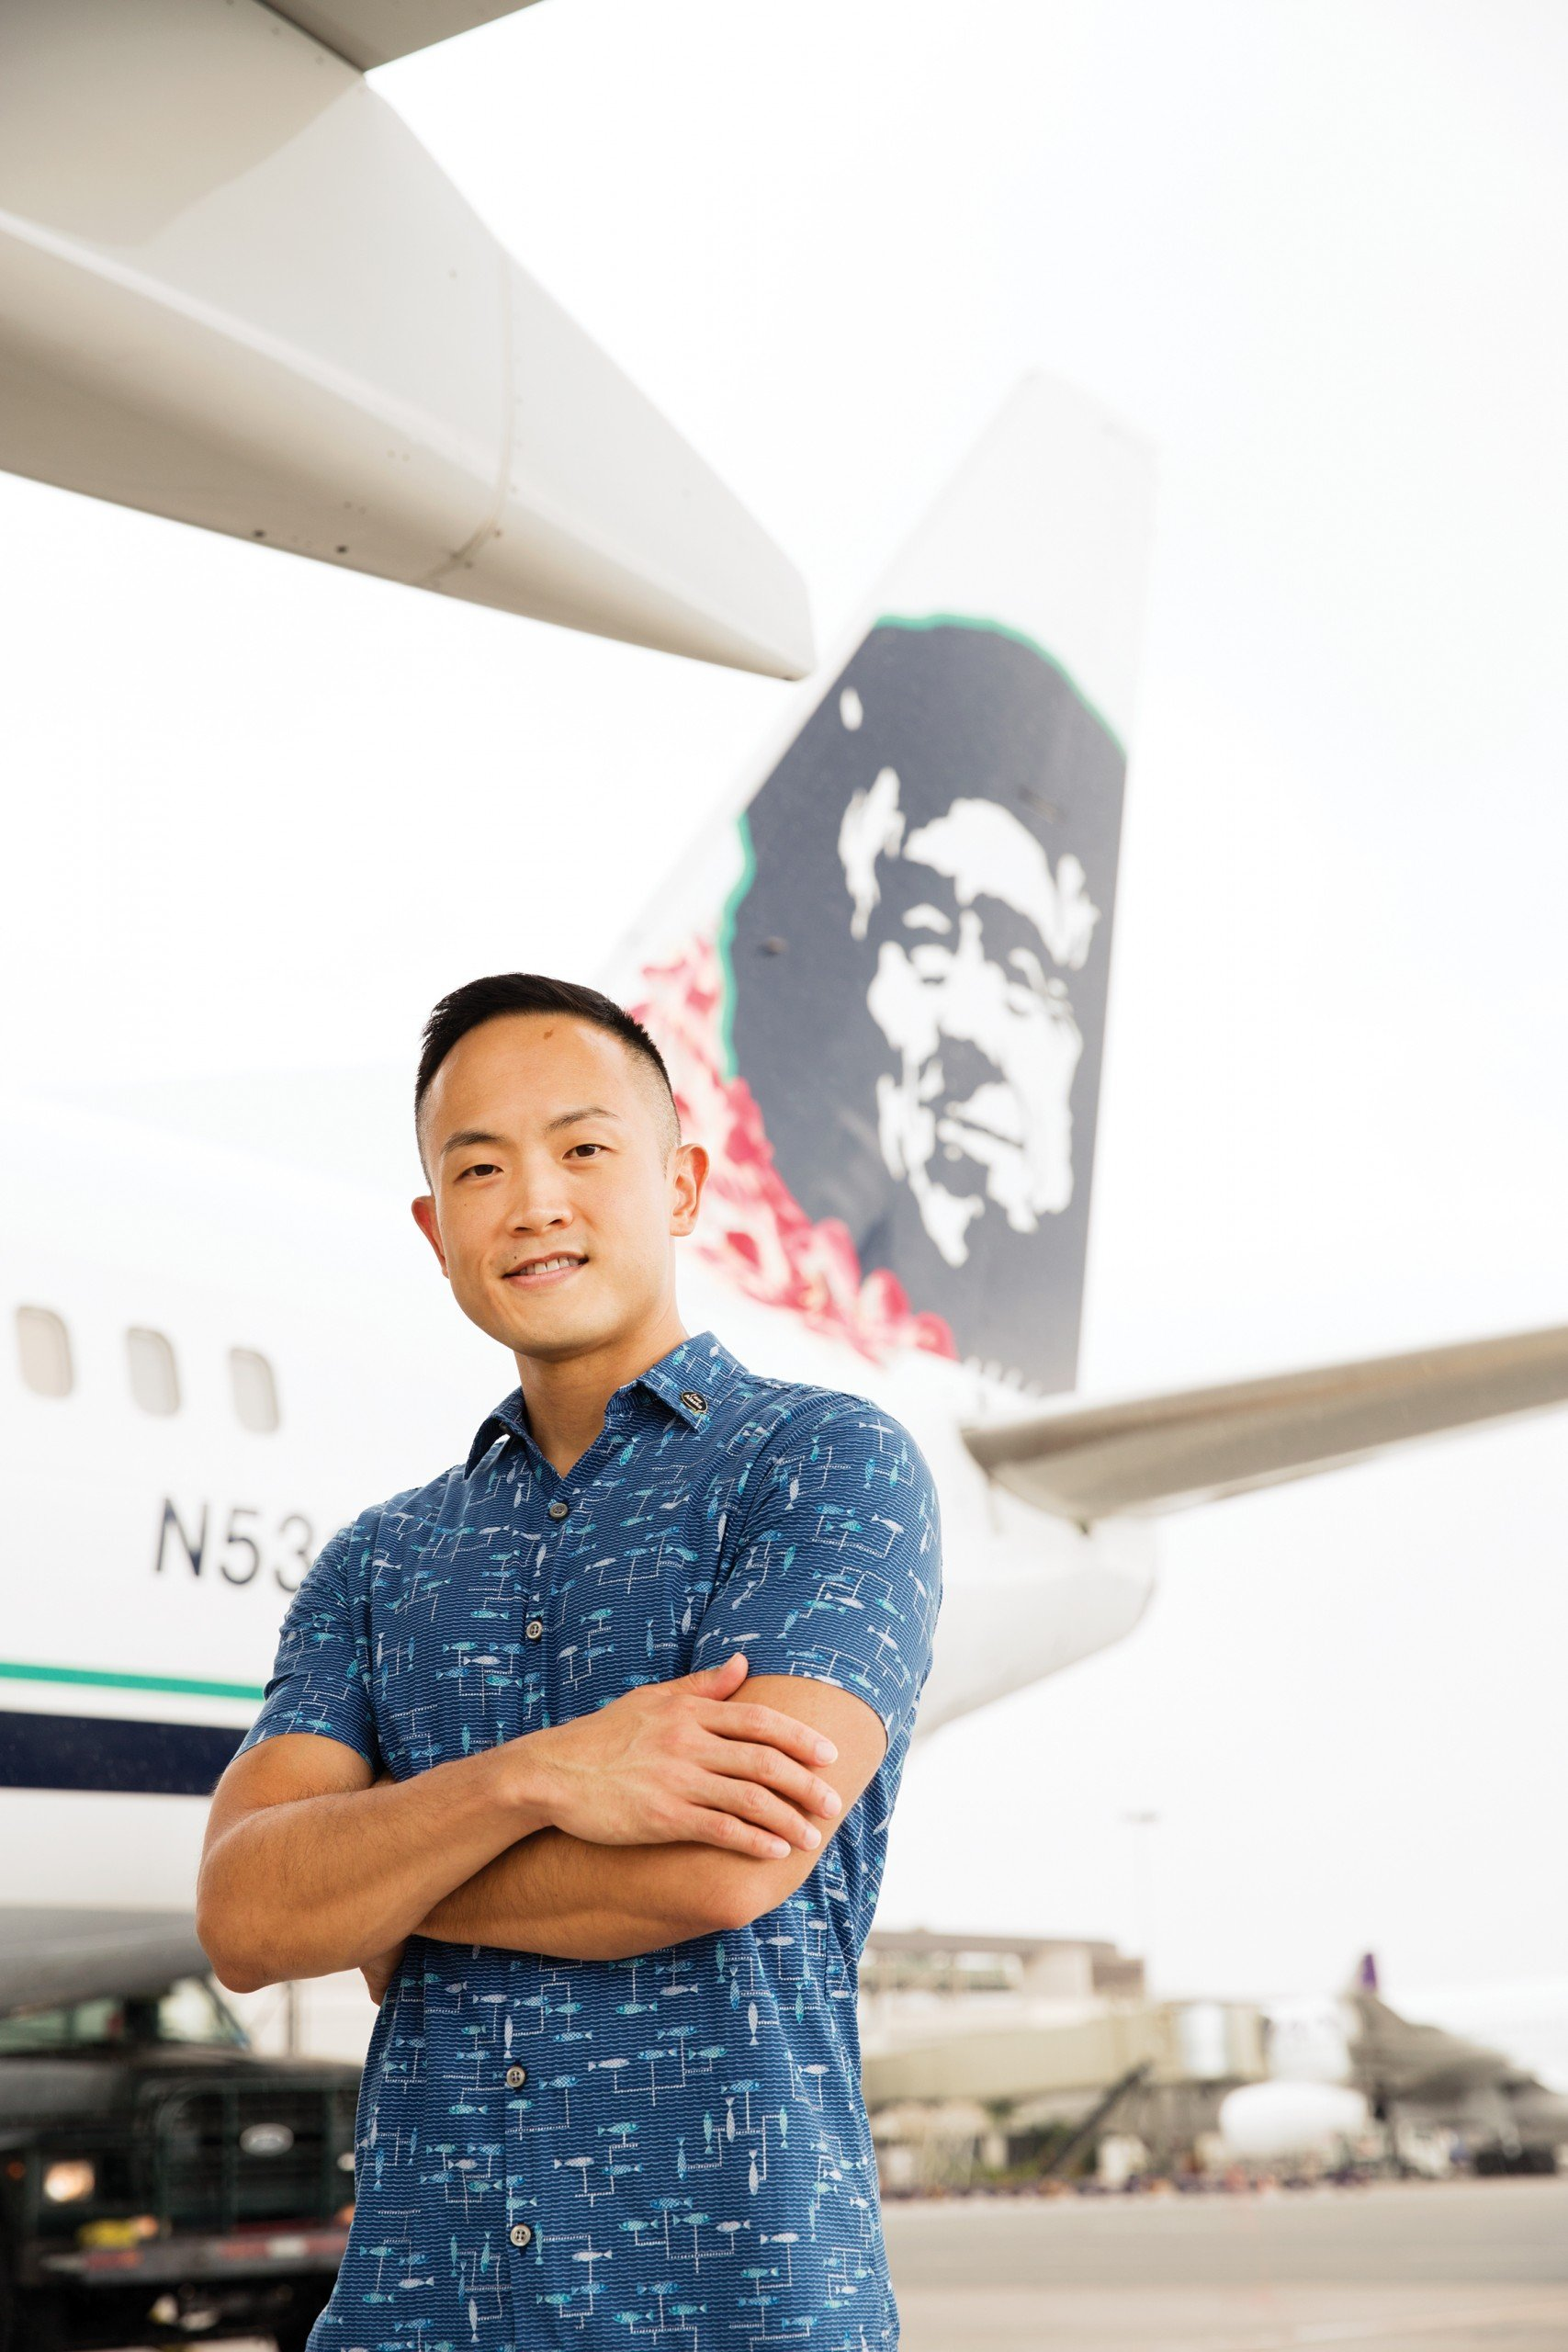 Daniel Chun, regional manager of sales and community marketing for Alaska Airlines, and an openly gay business leader in Hawaii, feels his sexual orientation has never been a source of discrimination against him in the business community. Photo: Olivier Koning